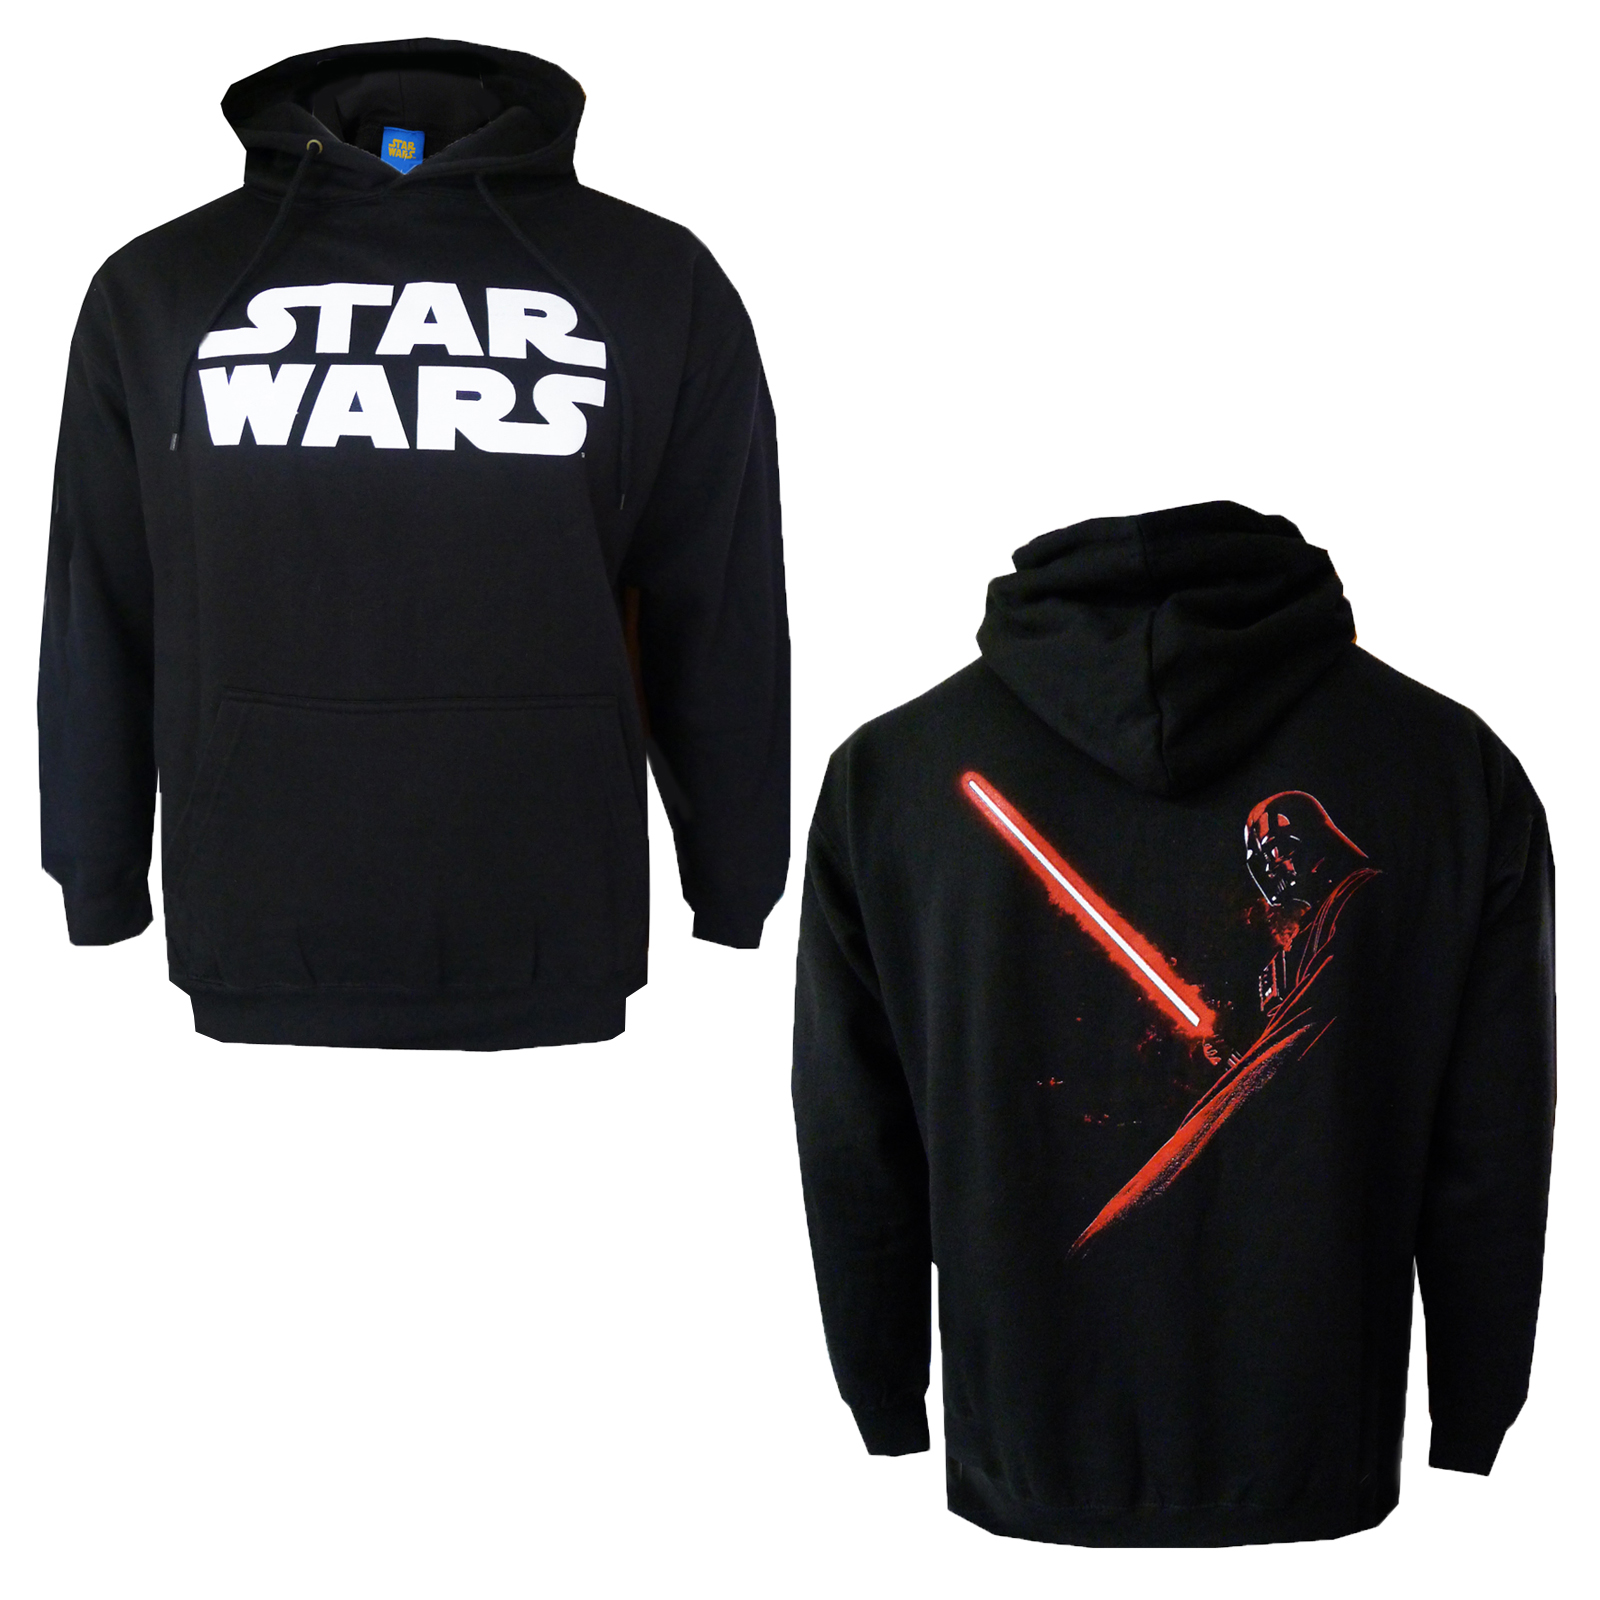 official star wars hoodie new darth vader shadow hoody pullover hooded jumper ebay. Black Bedroom Furniture Sets. Home Design Ideas